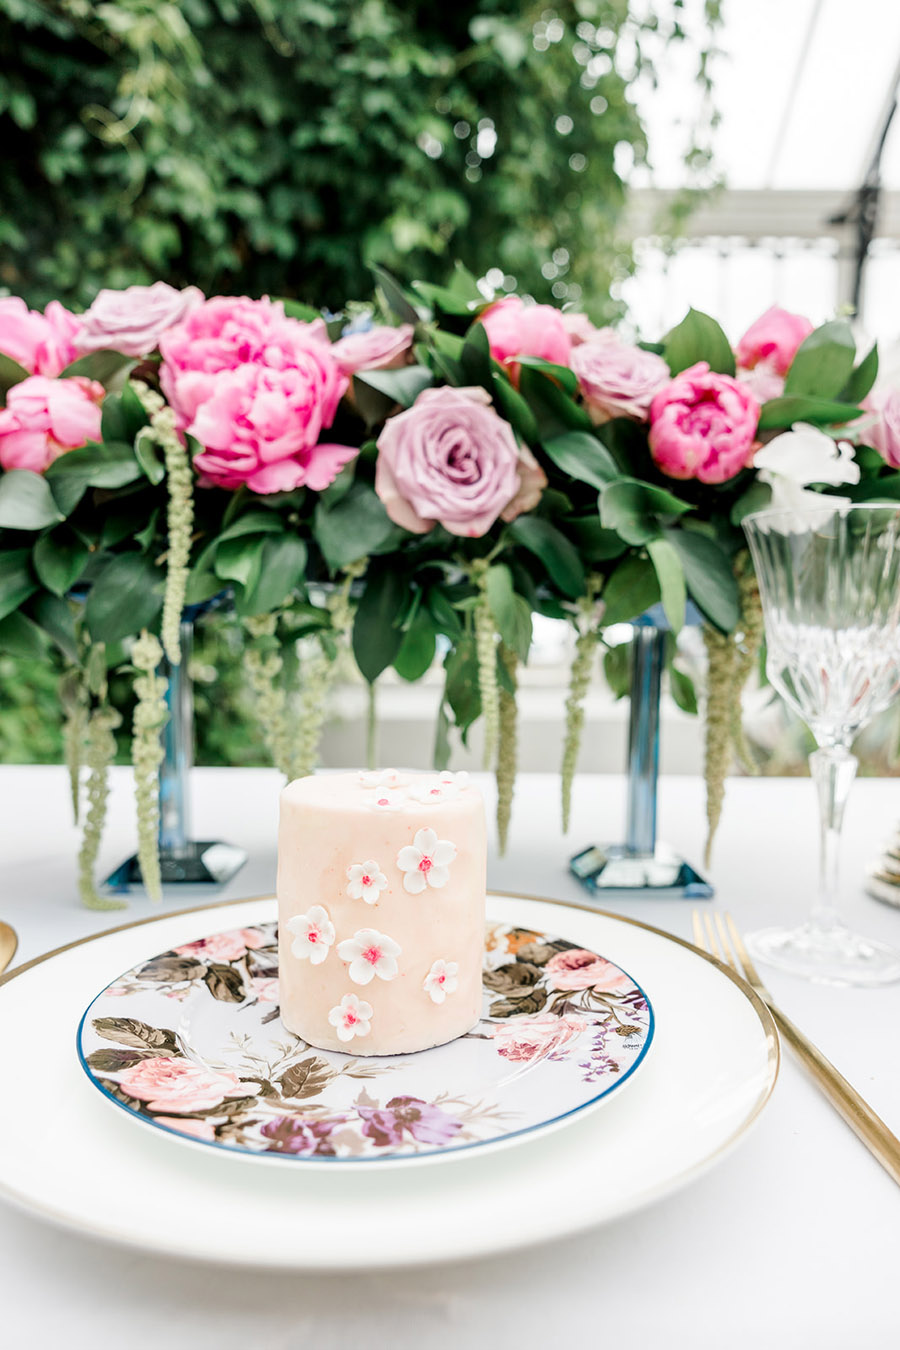 Modern intimate wedding styling inspiration from Slindon House, image credit Kelsie Scully (21)